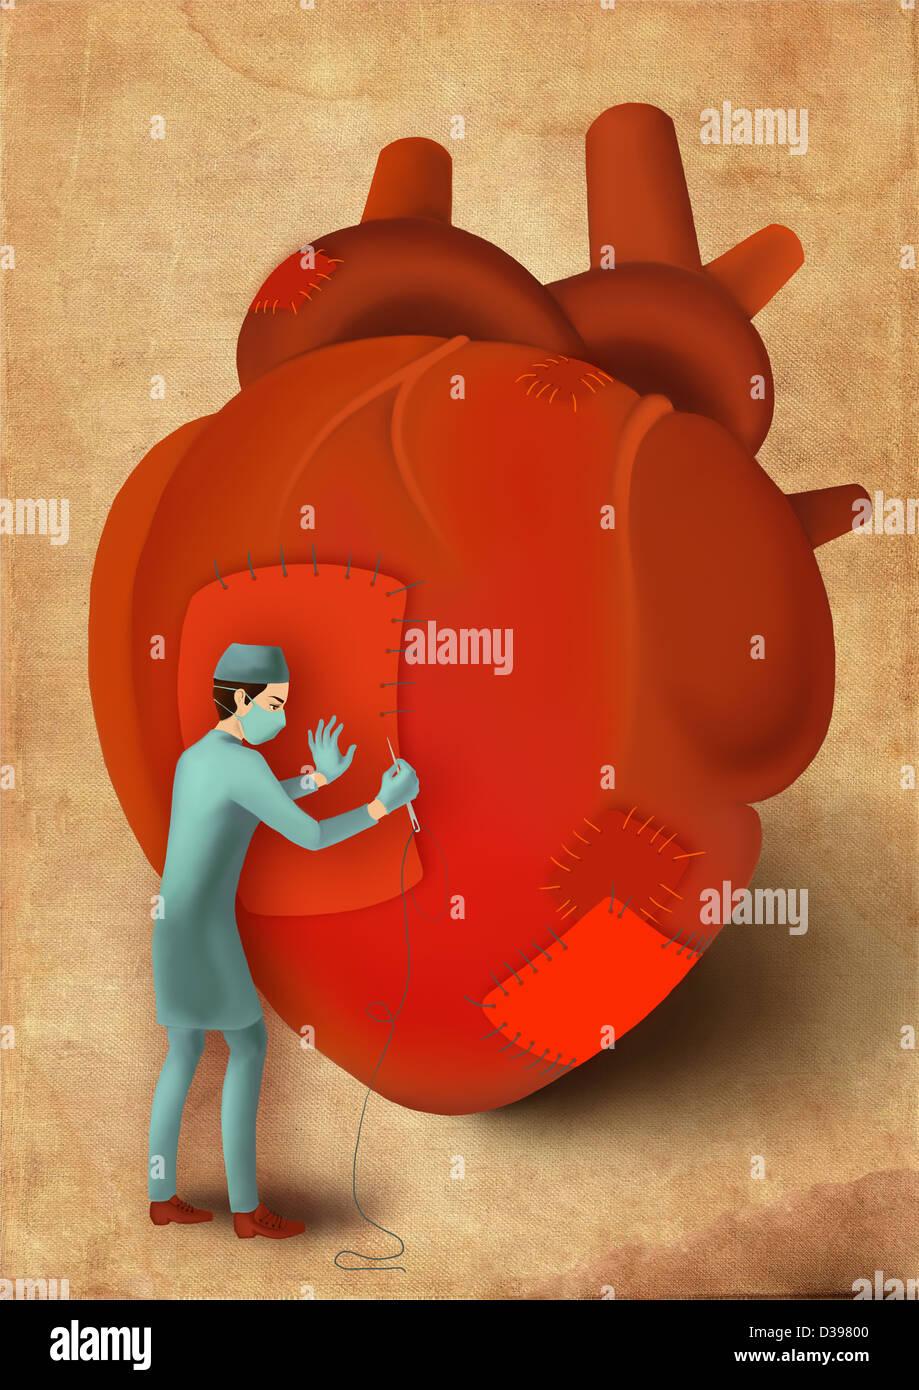 Male surgeon stitching heart with needle and thread depicting surgical treatment - Stock Image